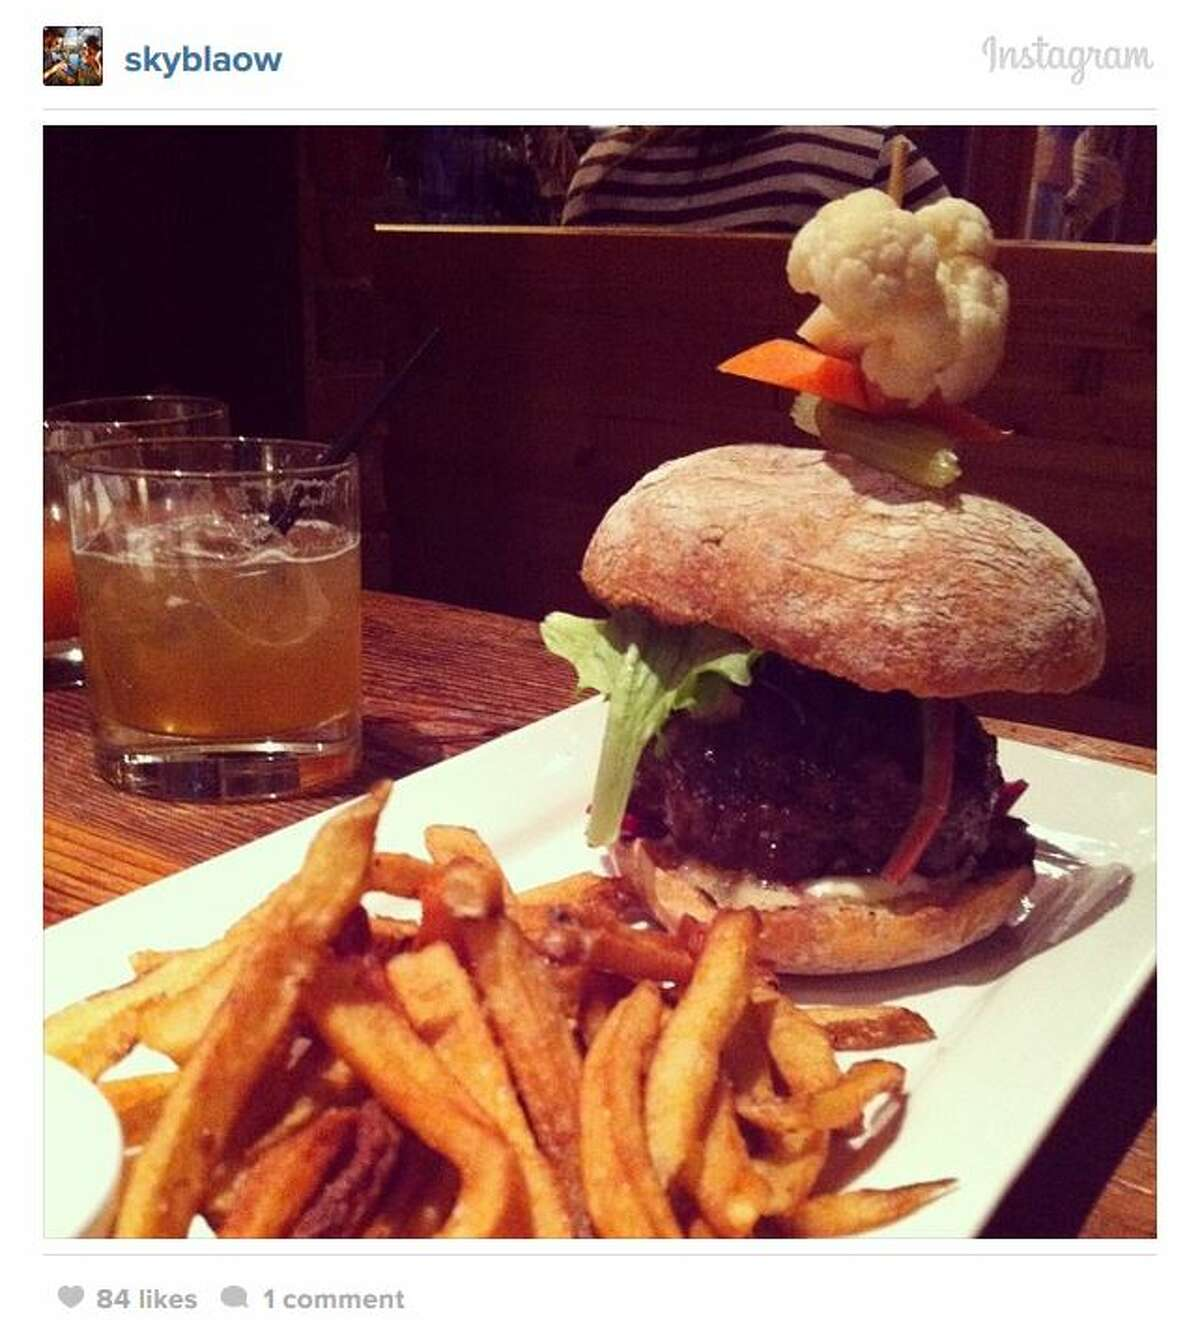 Terra Plata : Rooftop dining, Monday night paella, and marrow on crostini make this place foodie heaven. Pictured is the water buffalo burger with house-made chips. The drink is a chai-maple soda. 1401 Melrose Ave., Capitol Hill. Photo: skyblaow, Instagram.